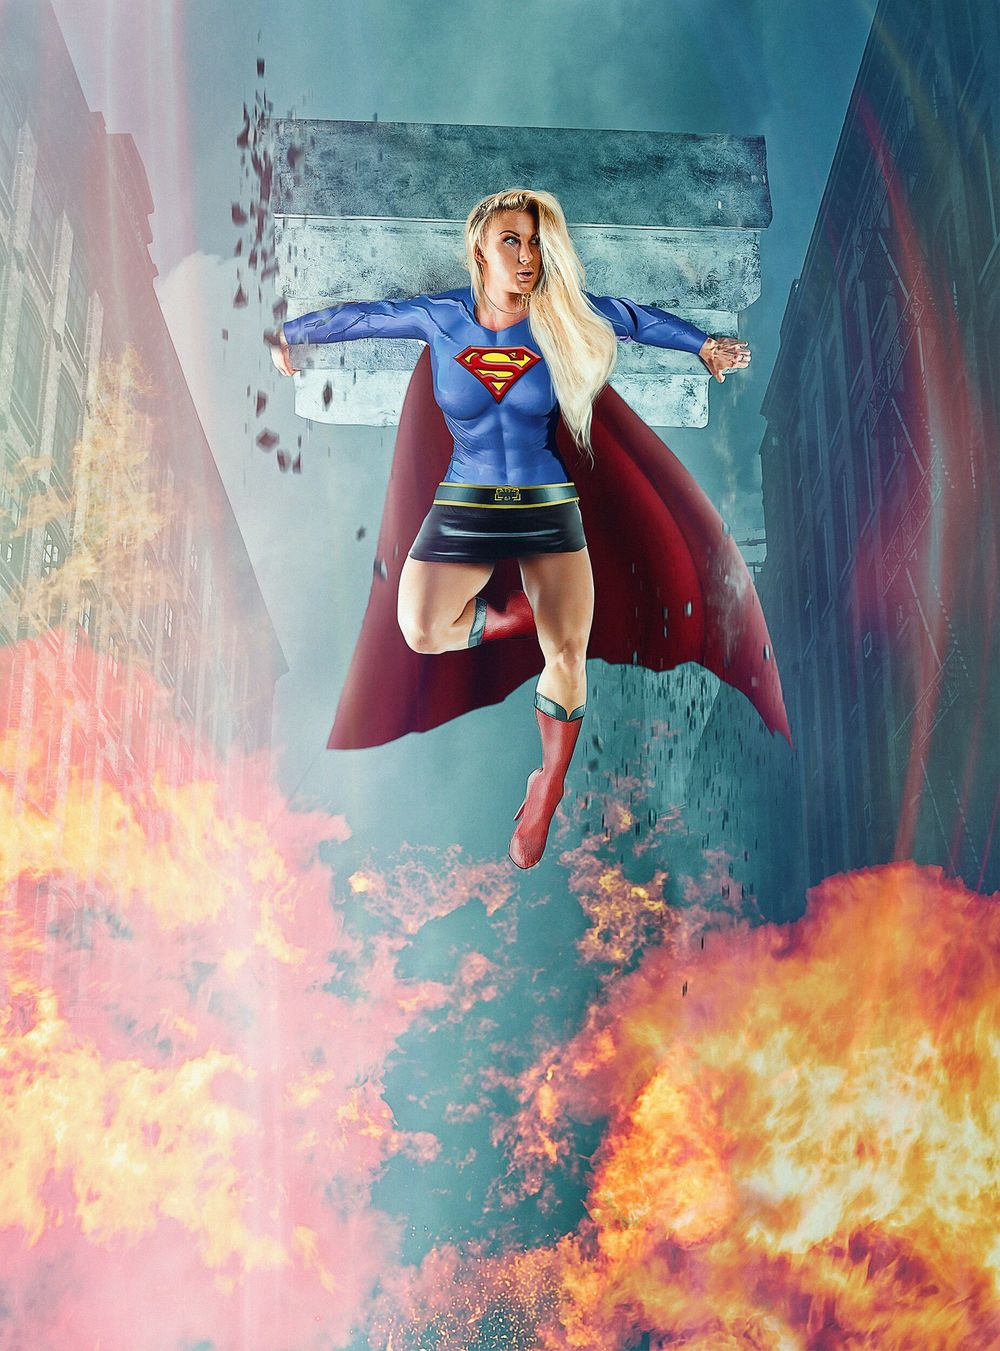 Legs_Art_Roxie_as_Supergirl